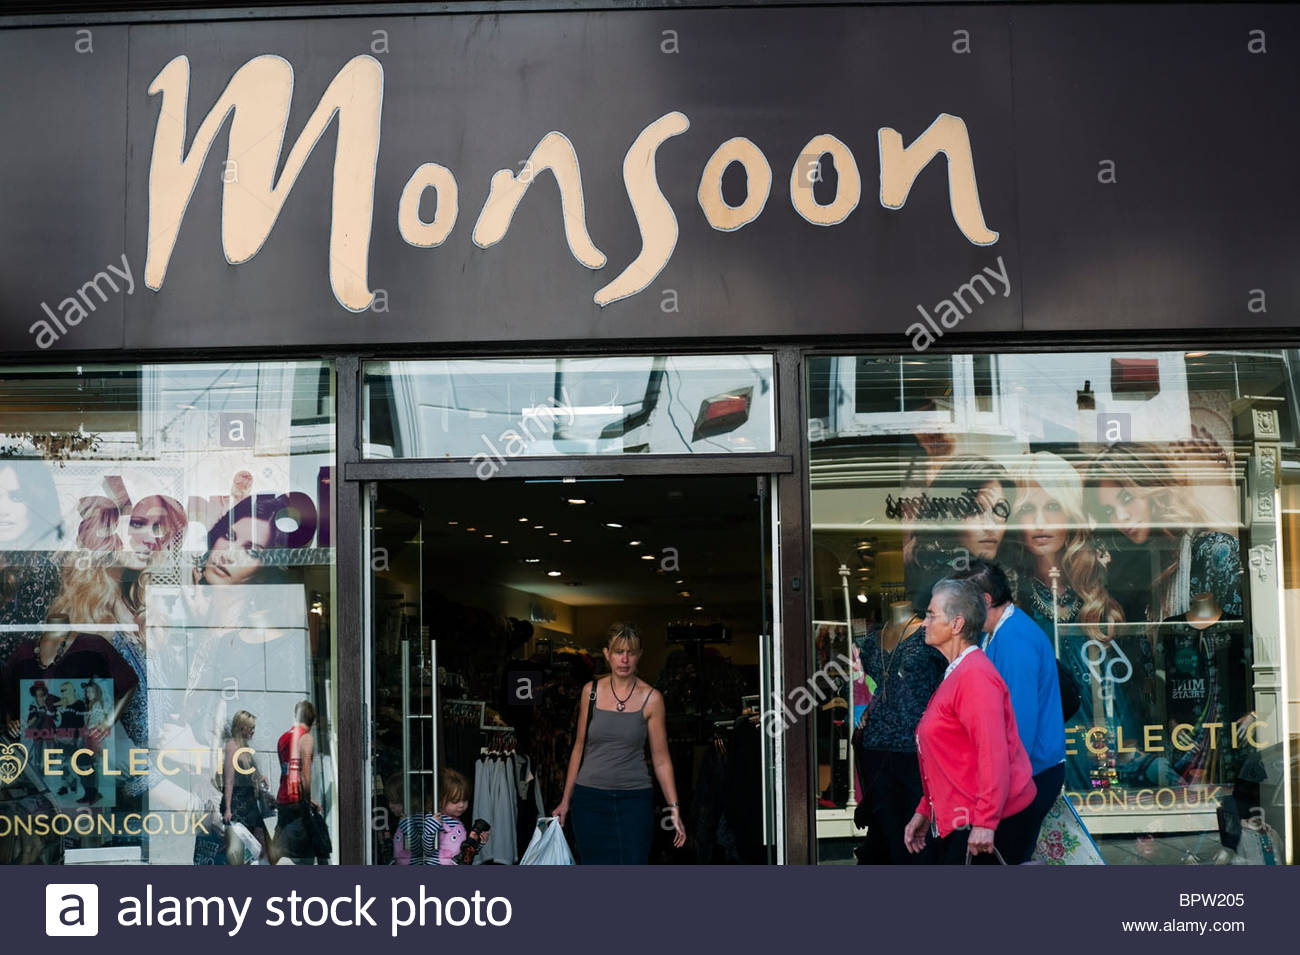 Monsoon clothes store High Street chain in Aberystwyth, Ceredigion, Wales, UK. - Stock Image